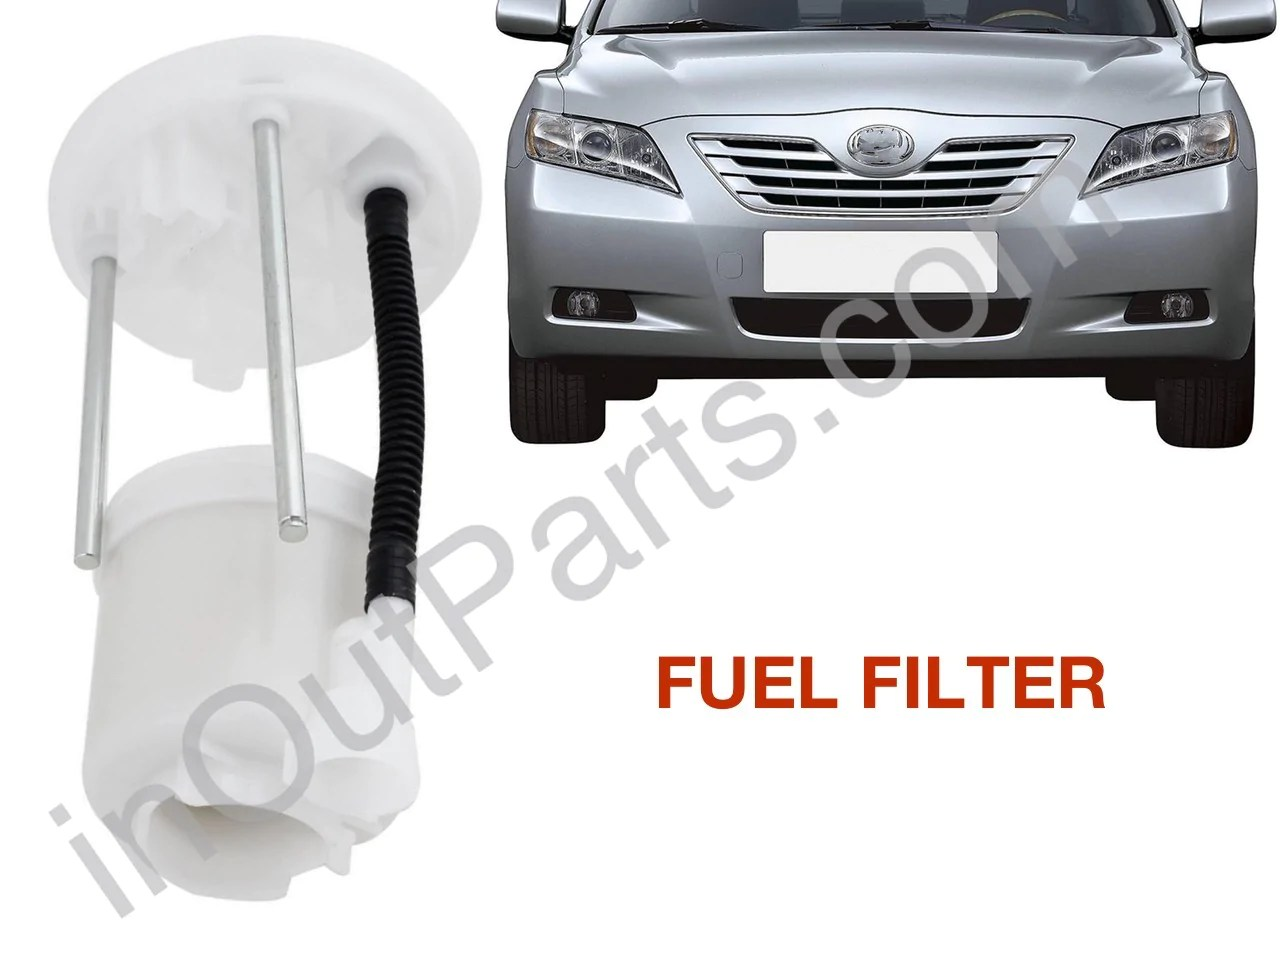 small resolution of fuel filter toyota camry 2azfe 2006 2007 2008 2009 2010 2011 2012 2013 2014 2015 2016